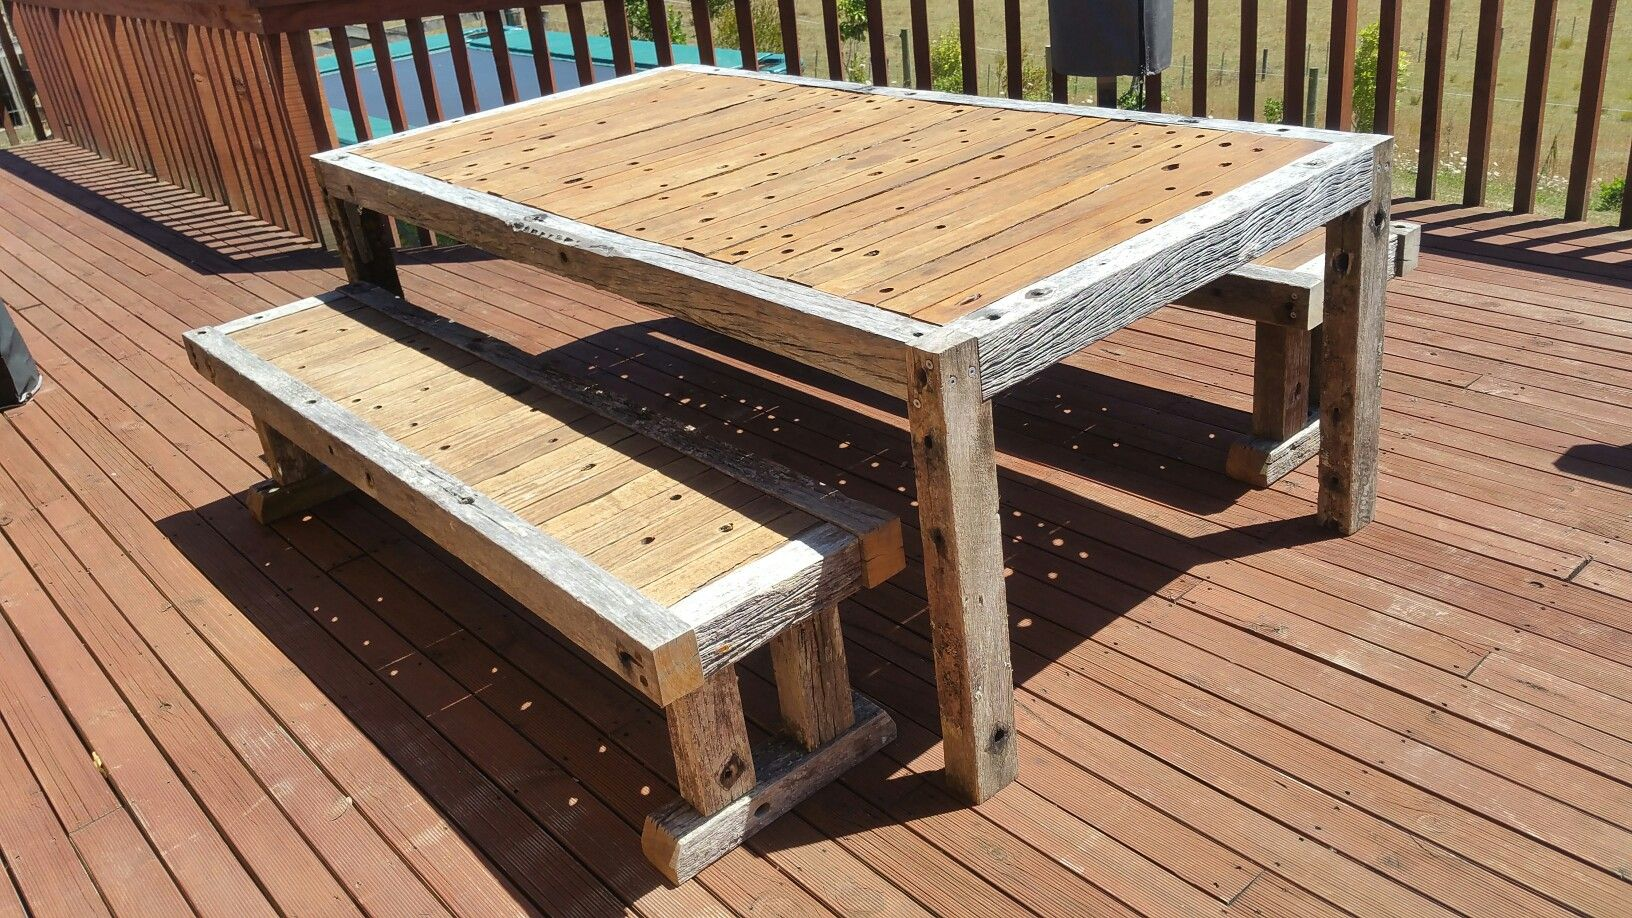 Crossarm rustic table farm tables lineman rustic table carpentry outdoor furniture